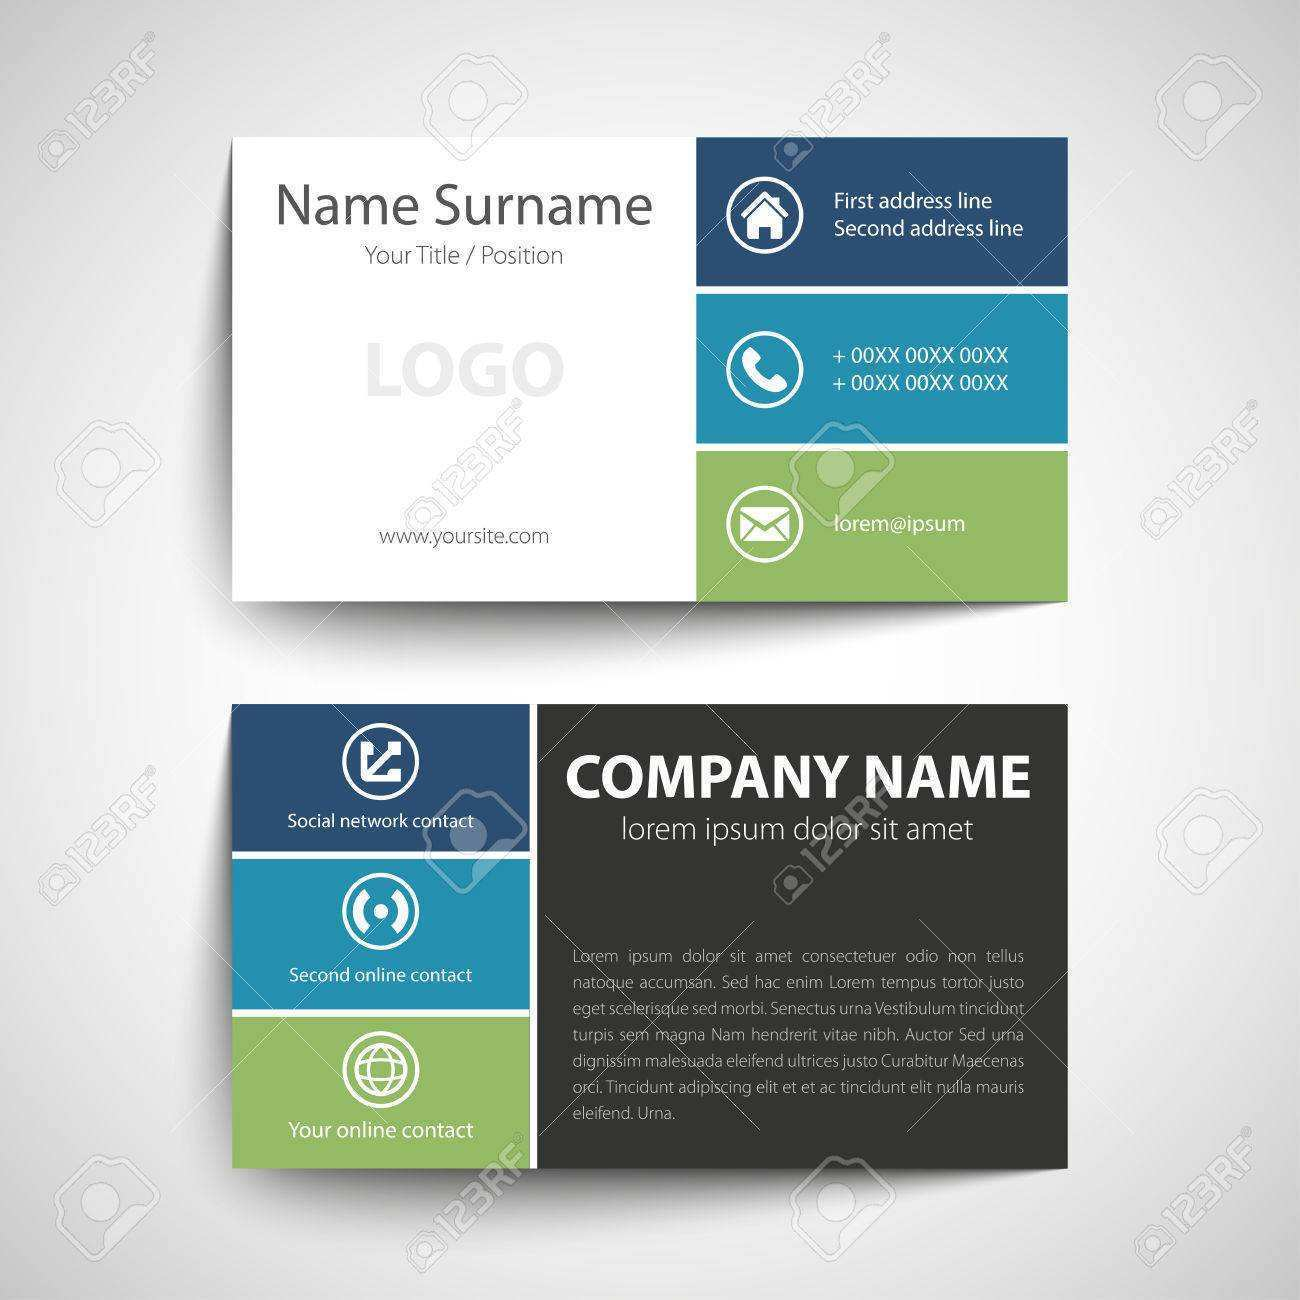 69 How To Create Simple Business Card Template Online Photo With Simple Business Card Template Online Cards Design Templates